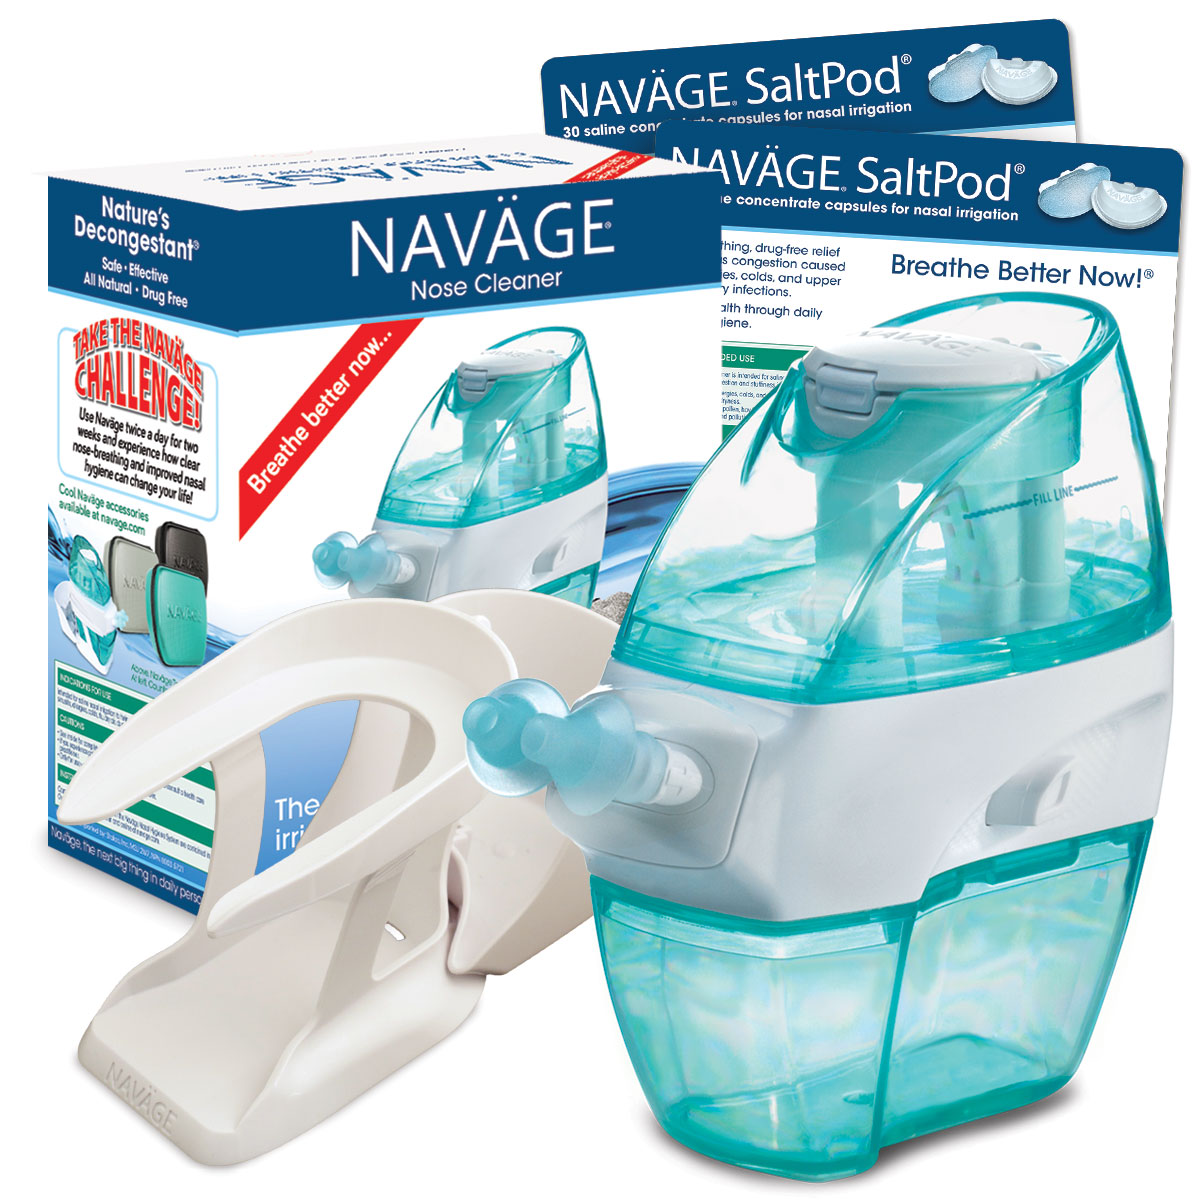 Best Connections On Walmart Seller Reviews: Navage On Walmart Seller Reviews